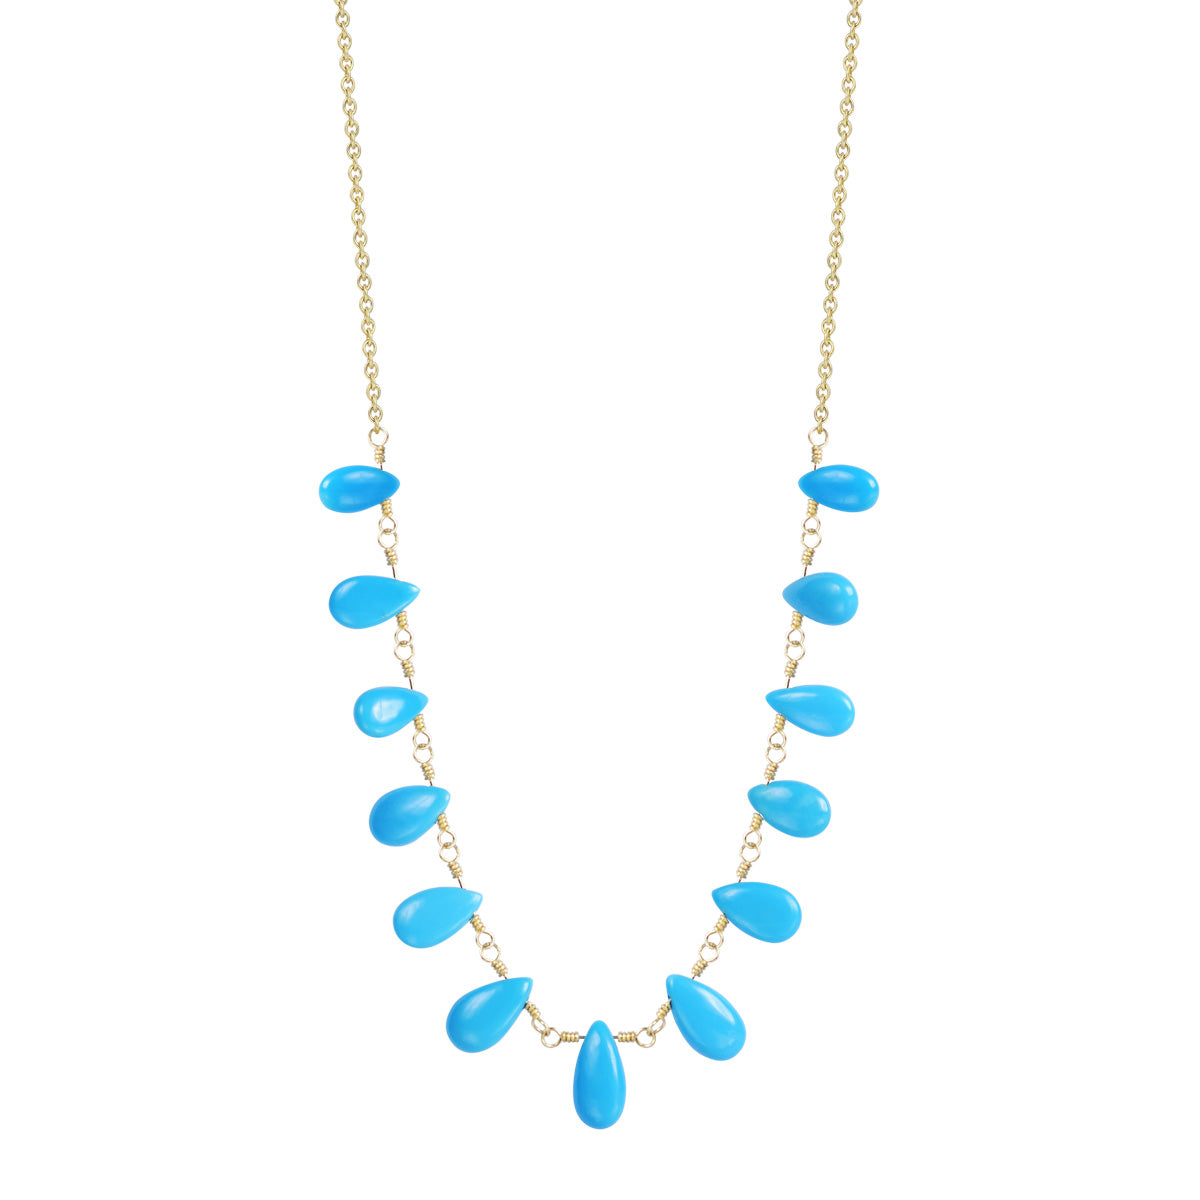 18K Gold 13 Turquoise Teardrops on Chain